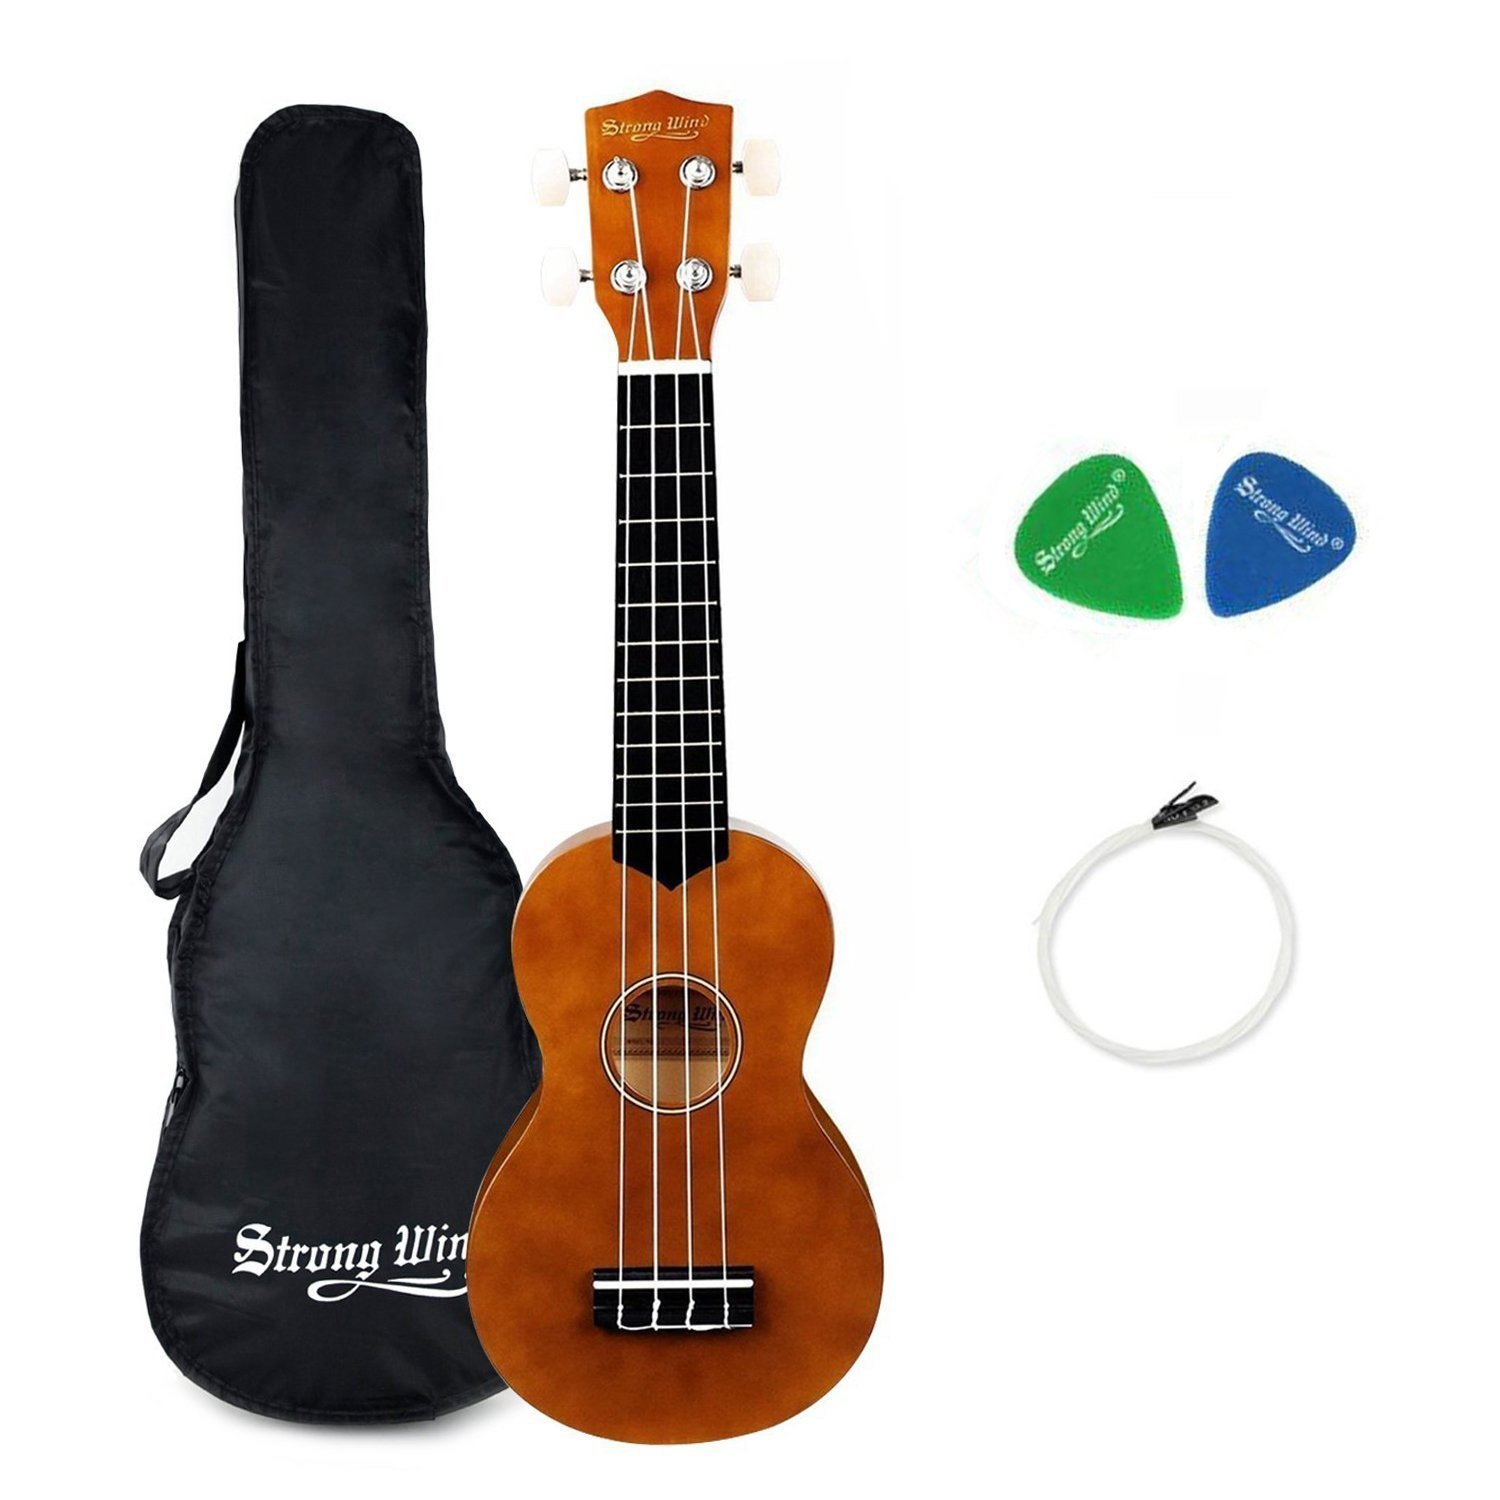 Strong Wind Soprano Ukulele 21 inch Beginer Ukulele Brown JIANGSU DAFENG INSTRUMENT CO. LTD SWUK21-30